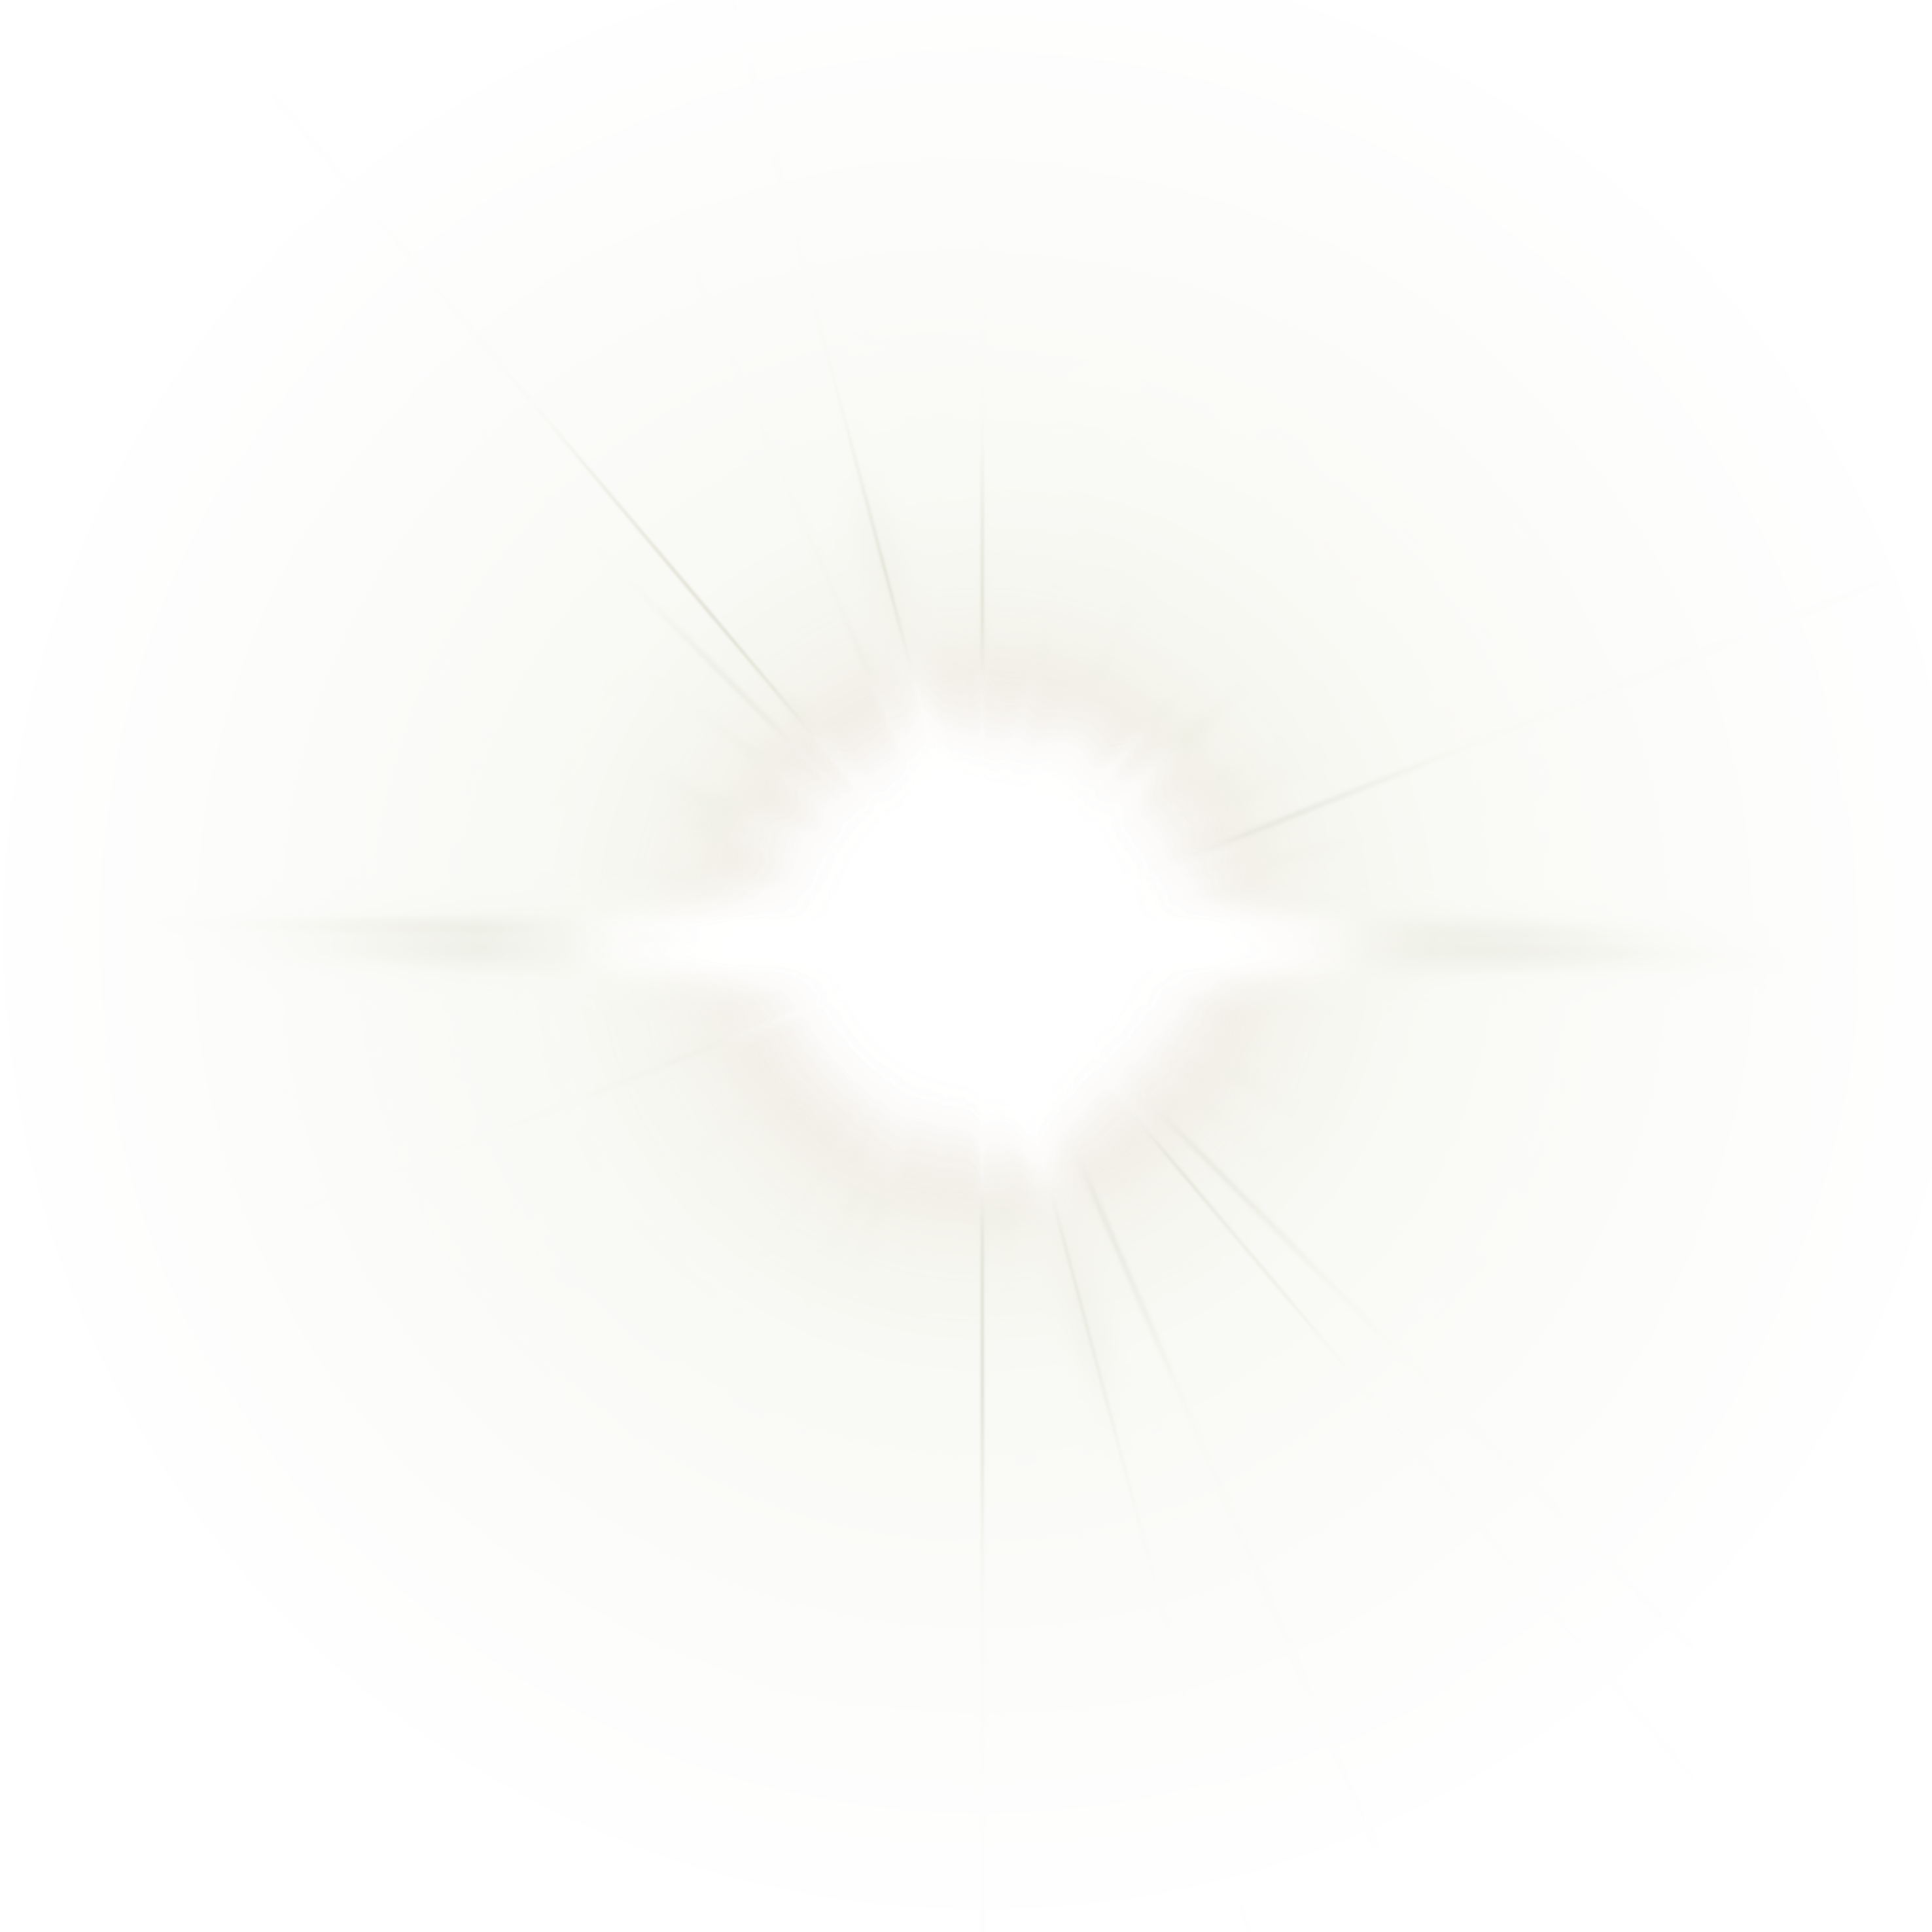 Clipart sky with sun rays image transparent stock Sun PNG Image - PurePNG | Free transparent CC0 PNG Image Library image transparent stock